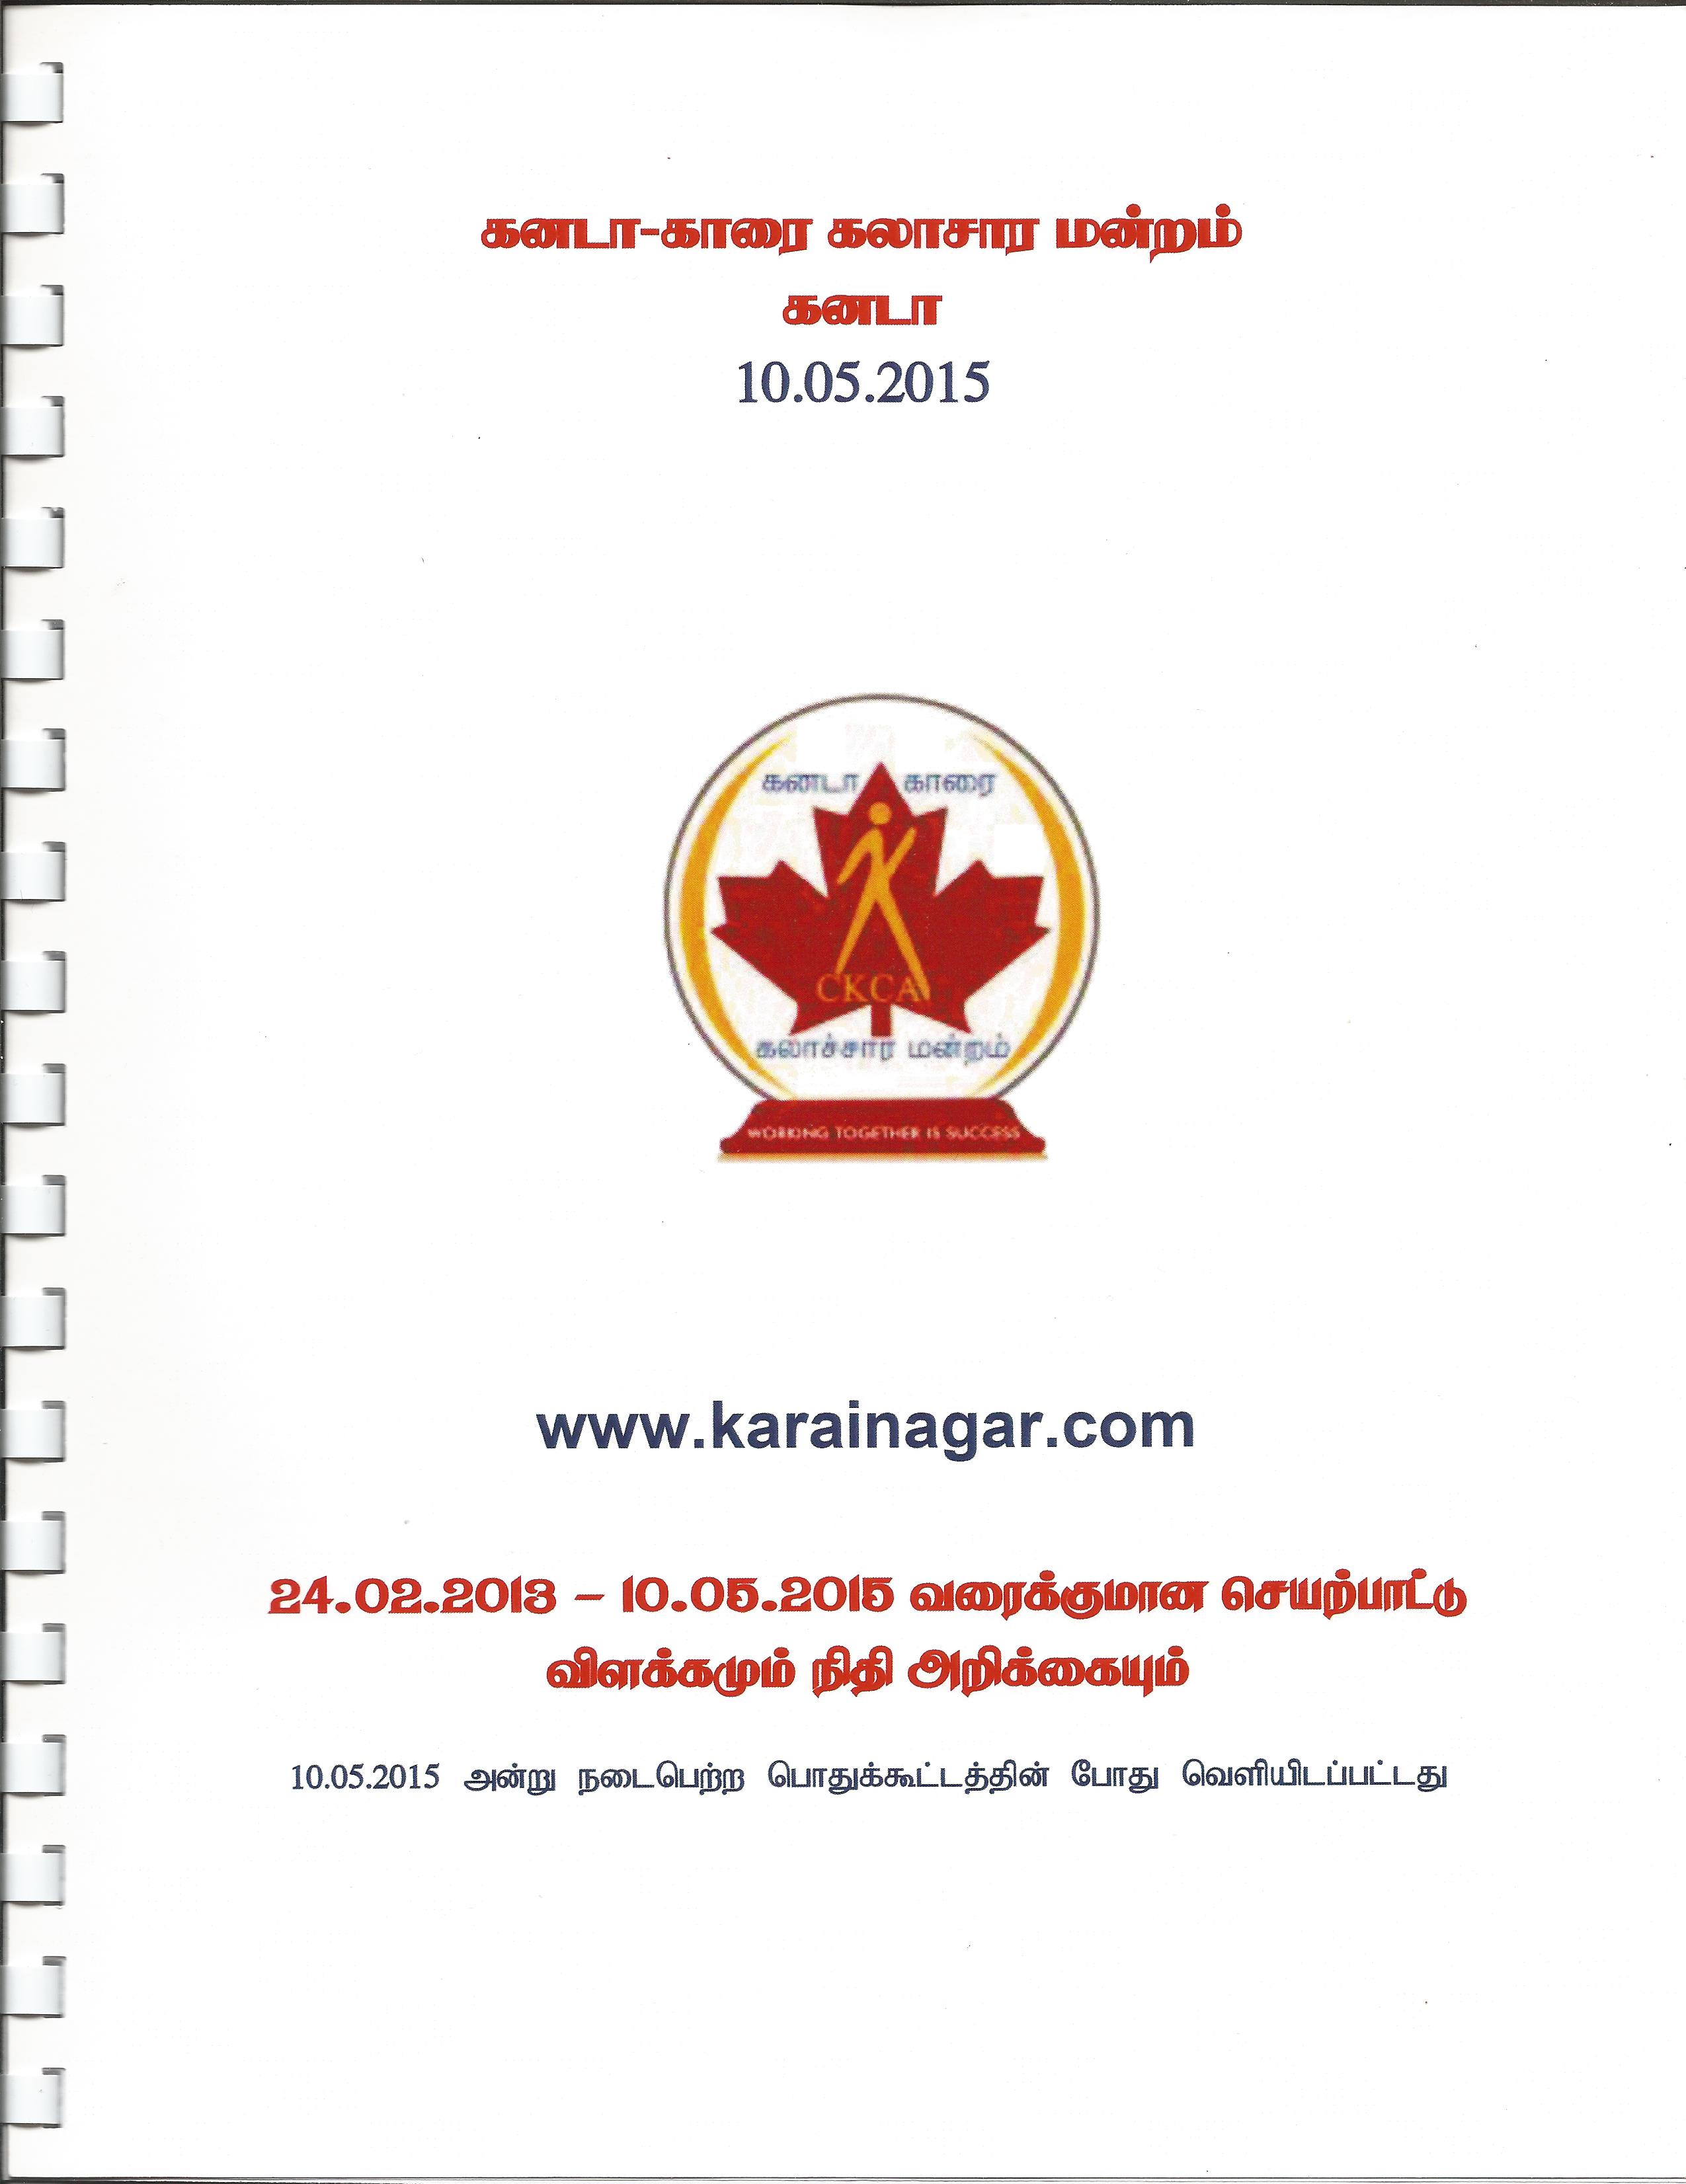 CKCA 2013-2015 FINAL REPORT FRONT COVER